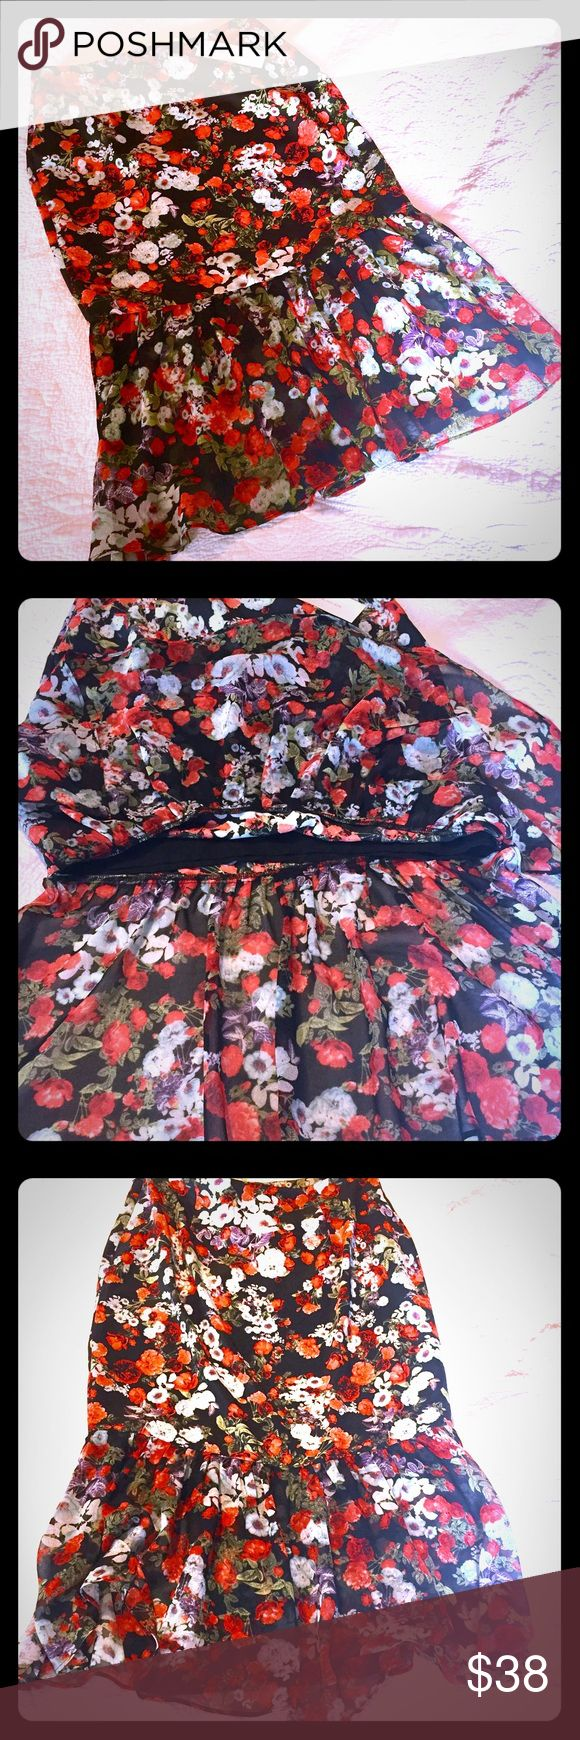 "BCBGeneration floral skirt A lovely skirt by BCBGeneration.  A flounced skirt featuring a fully lined mini skirt with a double side slit lower ruffle.  Side hidden zipper and hook enclosure Black background with red, light blue, and purple floral design. A beautifully soft 100% polyester texture that flows so elegantly. Size 4.  Length measures 29"": waist measures 29"" that sits at hips. BCBGeneration Skirts Midi"